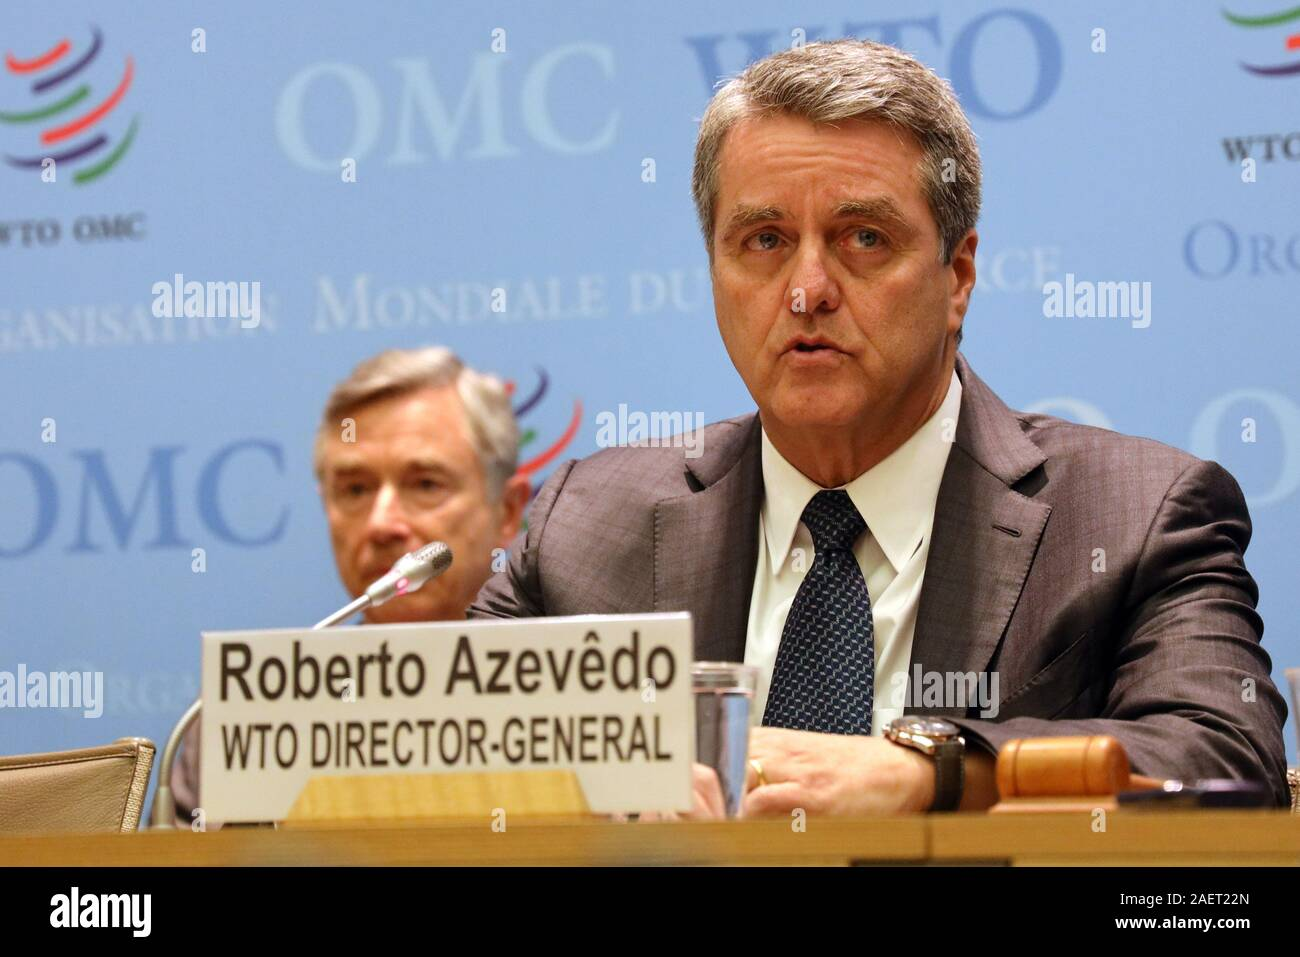 Geneva, Switzerland. 10th Dec, 2019. World Trade Organization (WTO) Director-General Roberto Azevedo (Front) speaks at a press conference after a two-day meeting of the WTO's General Council in Geneva, Switzerland, on Dec. 10, 2019. Roberto Azevedo said here Tuesday that as of Wednesday, the Appellate Body would be unable to hear new appeals. Credit: Peter Kenny/Xinhua/Alamy Live News Stock Photo